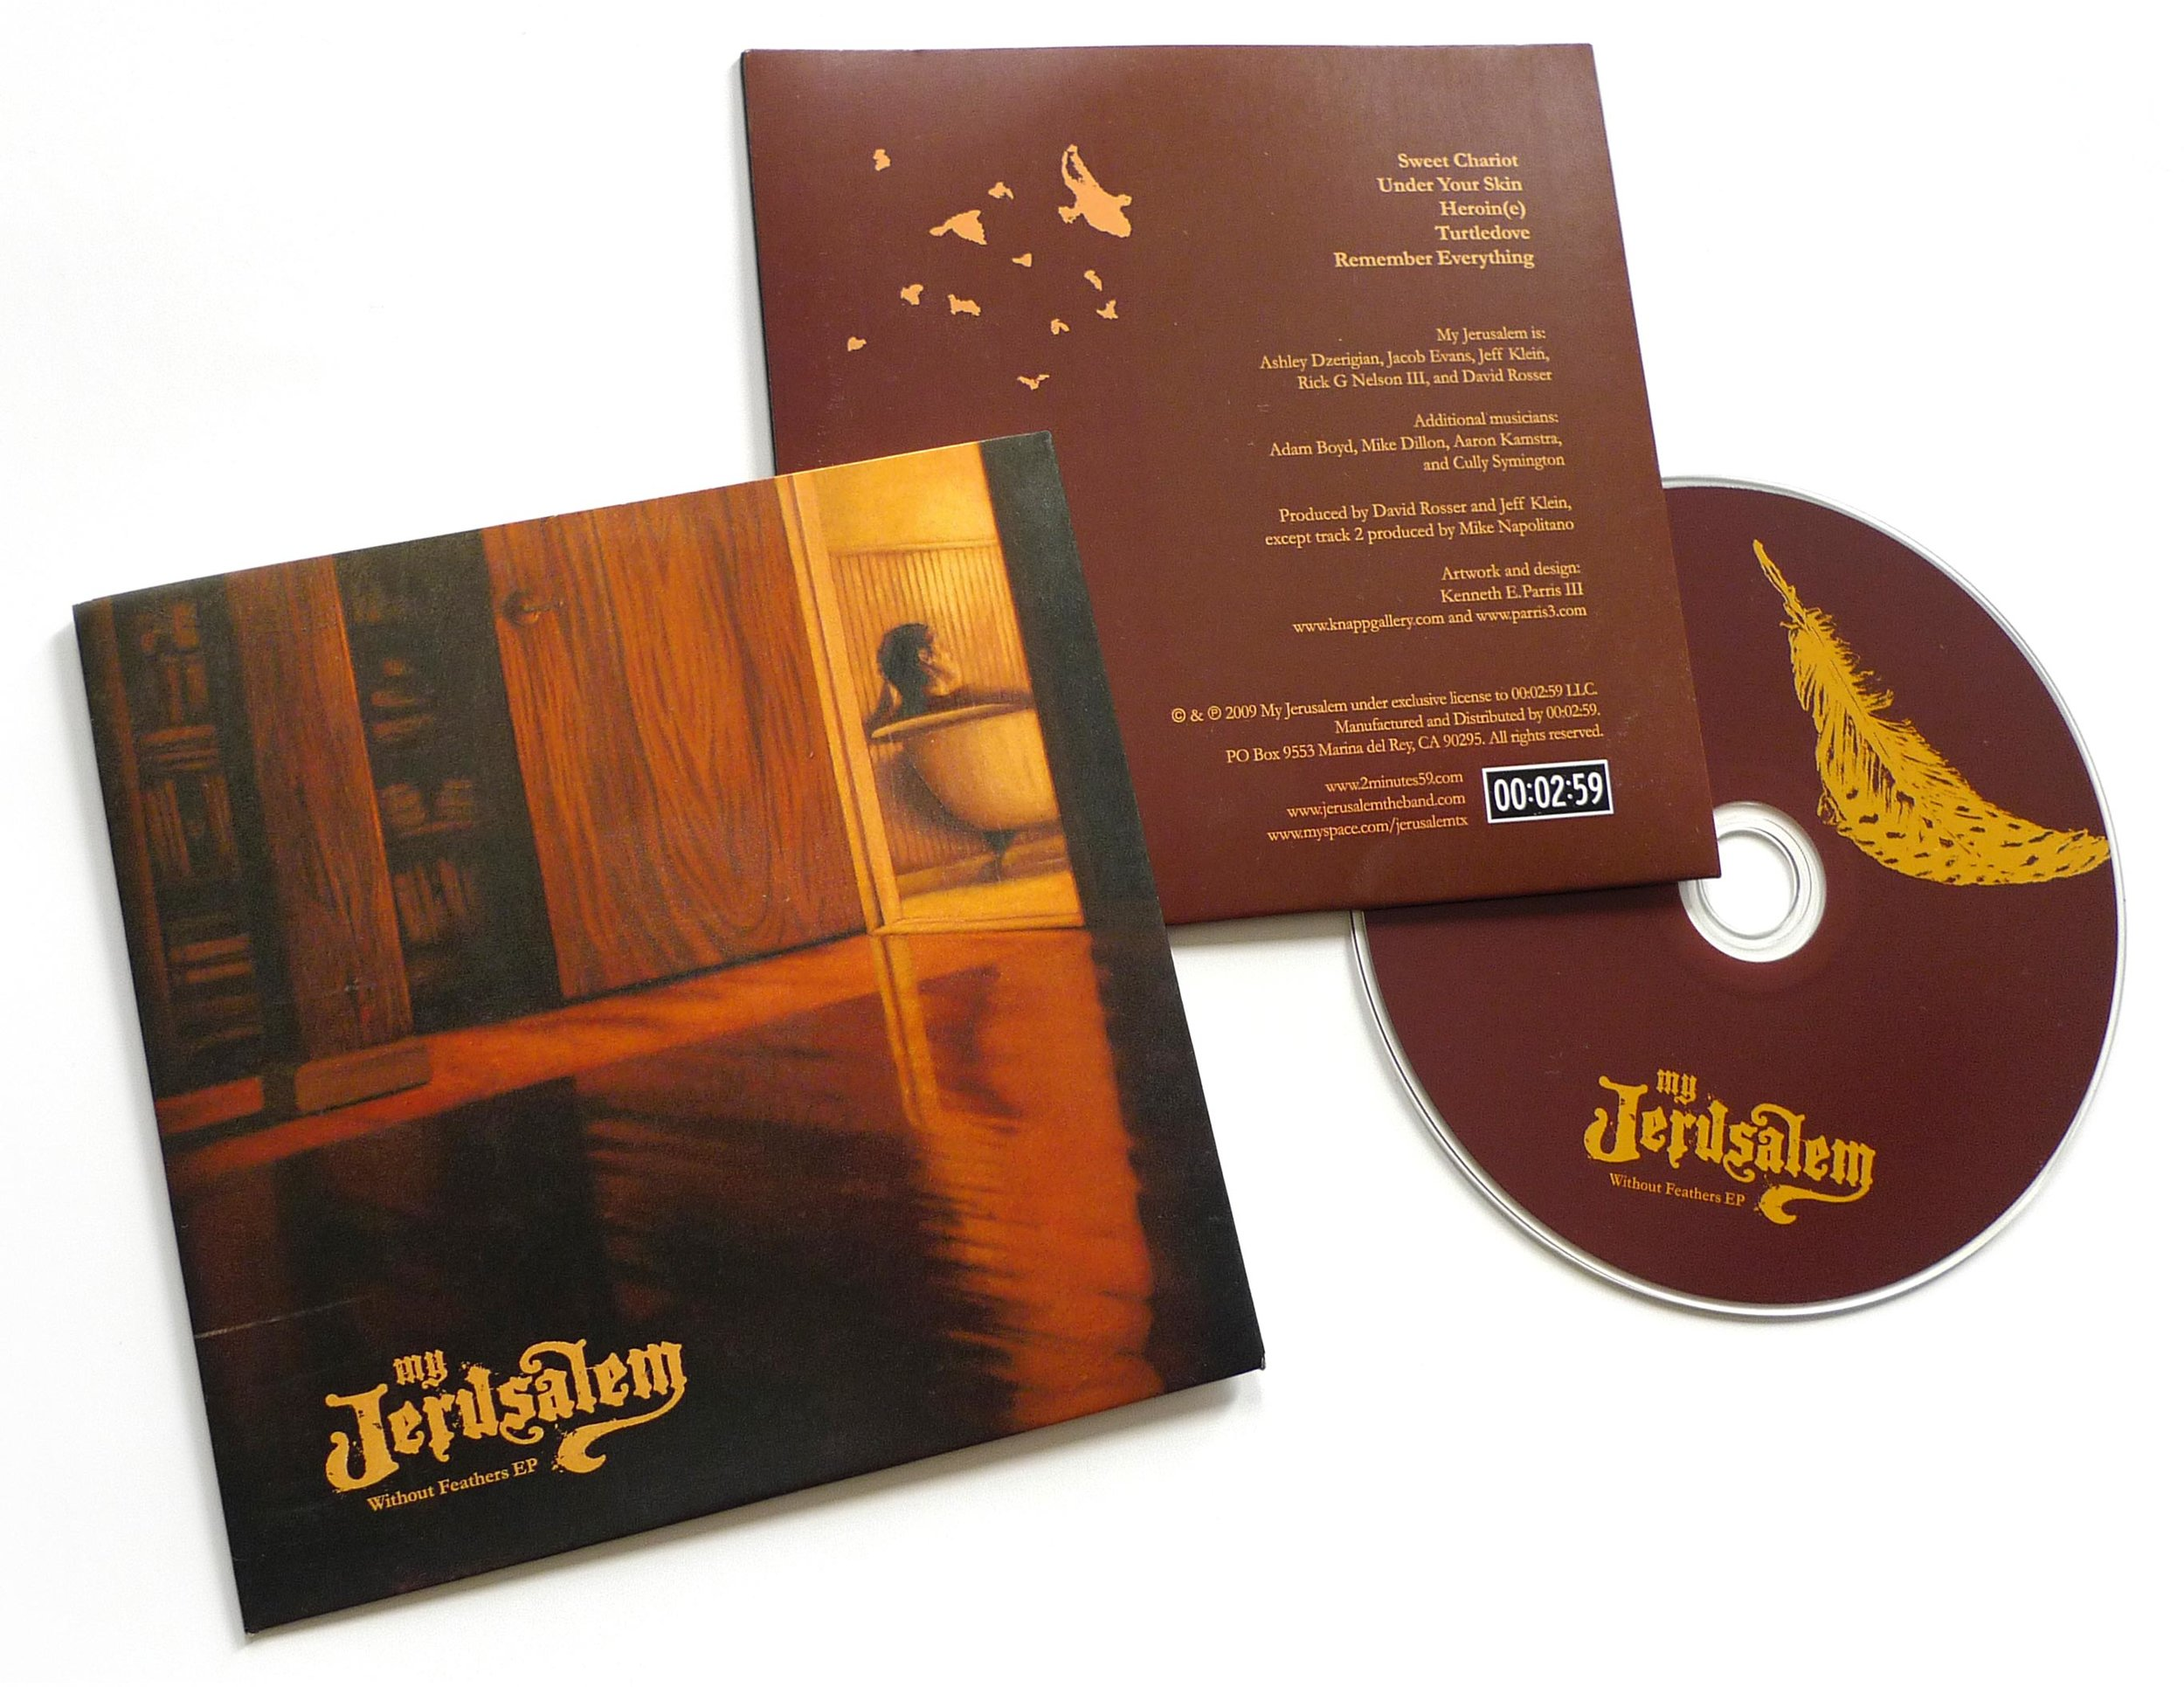 """CD packaging and logo design for EP """"Without Feathers"""",a preview before the full length """"Gone For Good"""" release"""